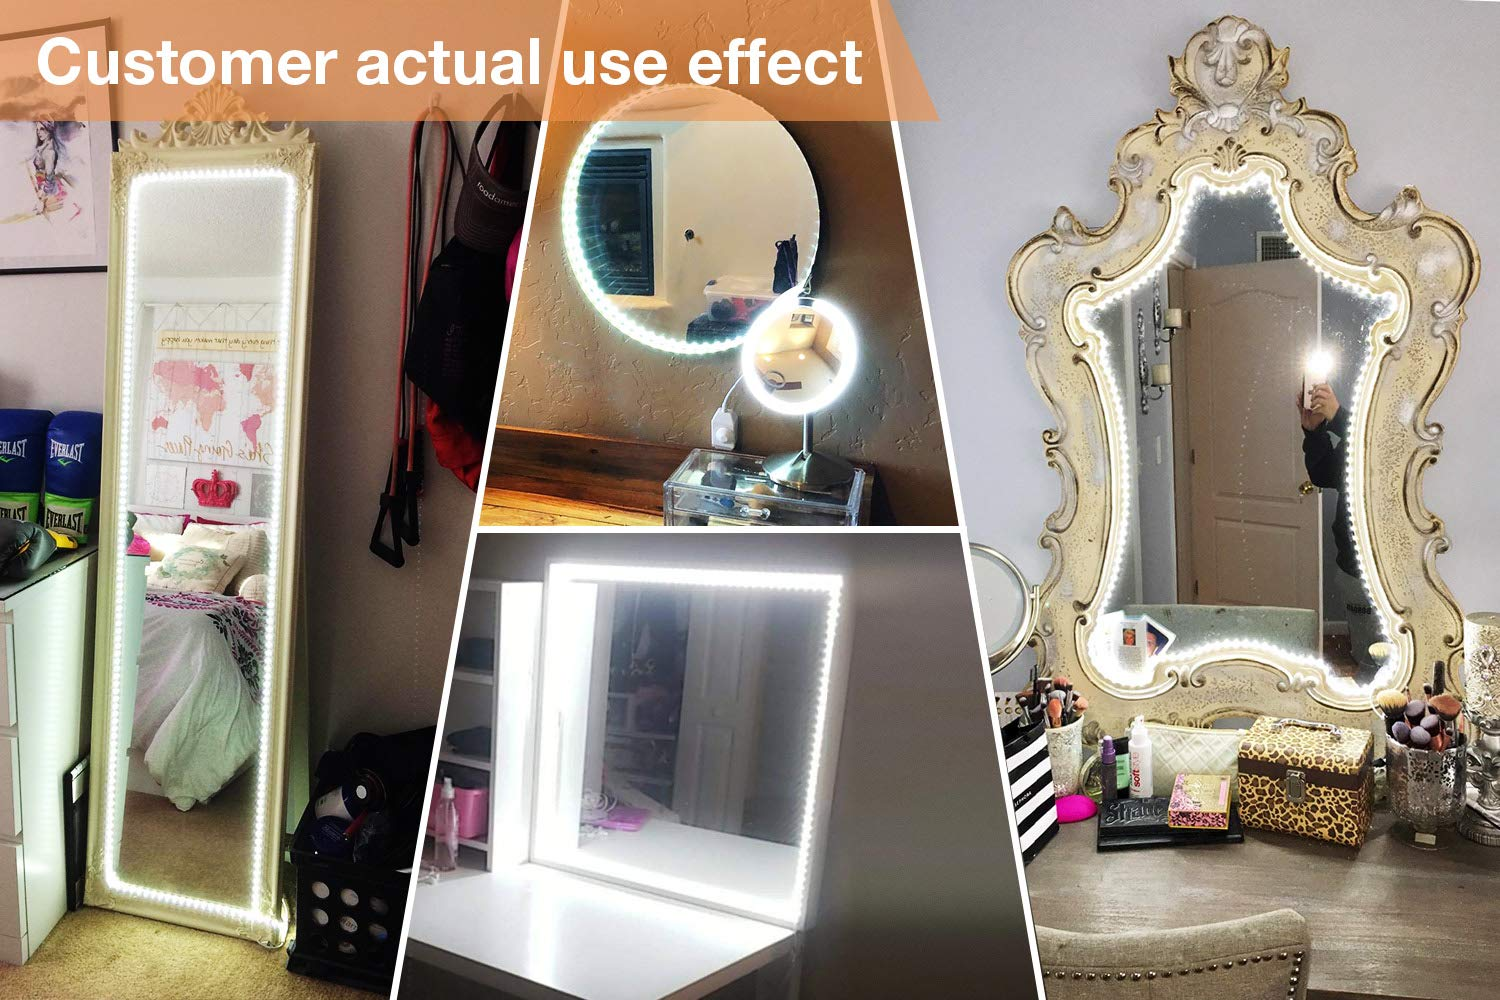 LED Vanity Mirror Lights Kit for Makeup Dressing Table Vanity Set 13ft Flexible LED Light Strip 6000K Daylight White with Dimmer and Power Supply, DIY Mirror, Mirror not Included by PANGTON VILLA (Image #2)